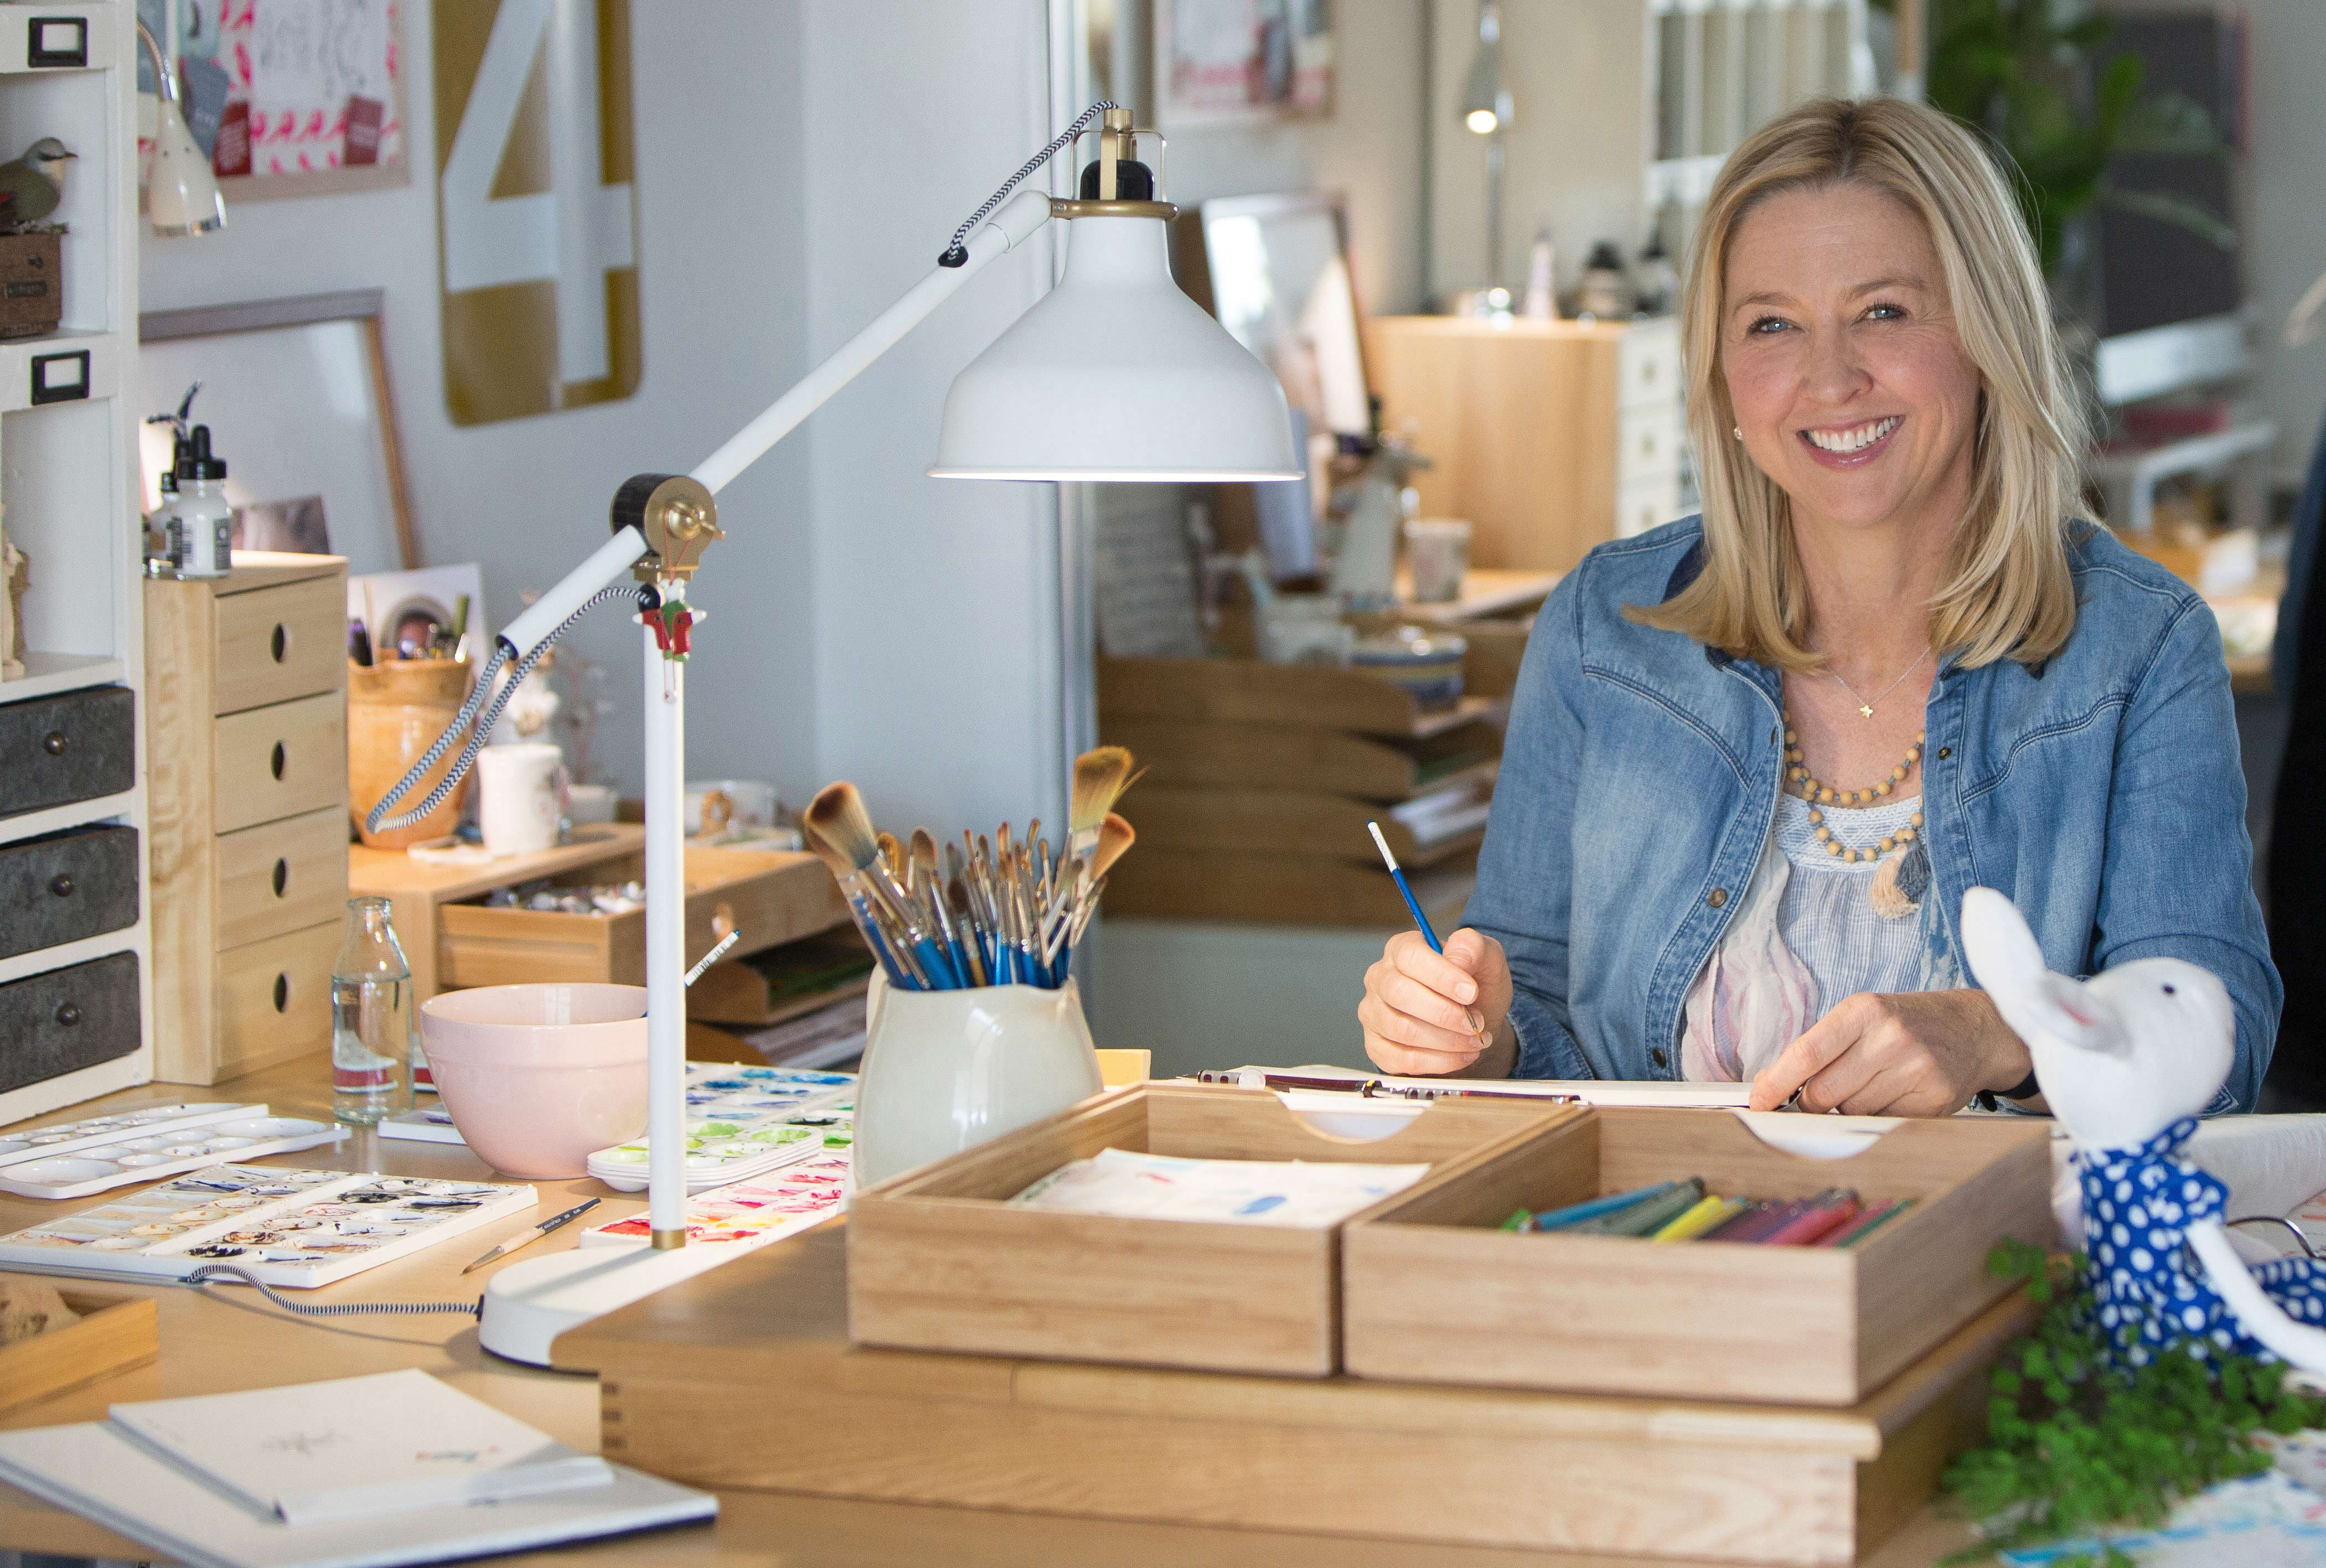 Artist and Author Kate Knapp Is As Inspiring and Endearing As Her Character, Ruby Red Shoes